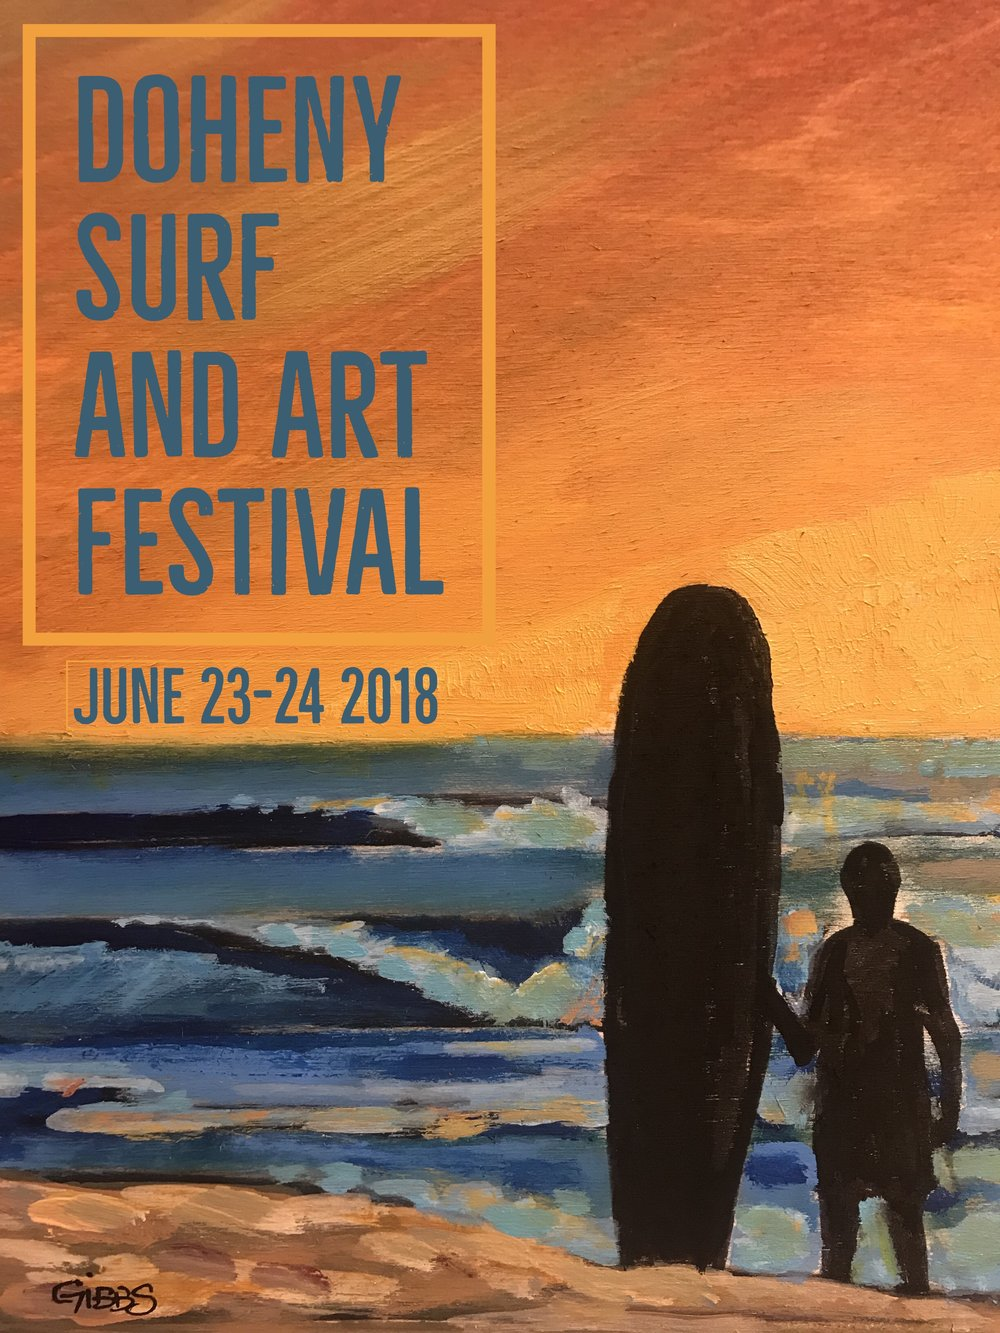 Doheny Surf and Art Festival 2018